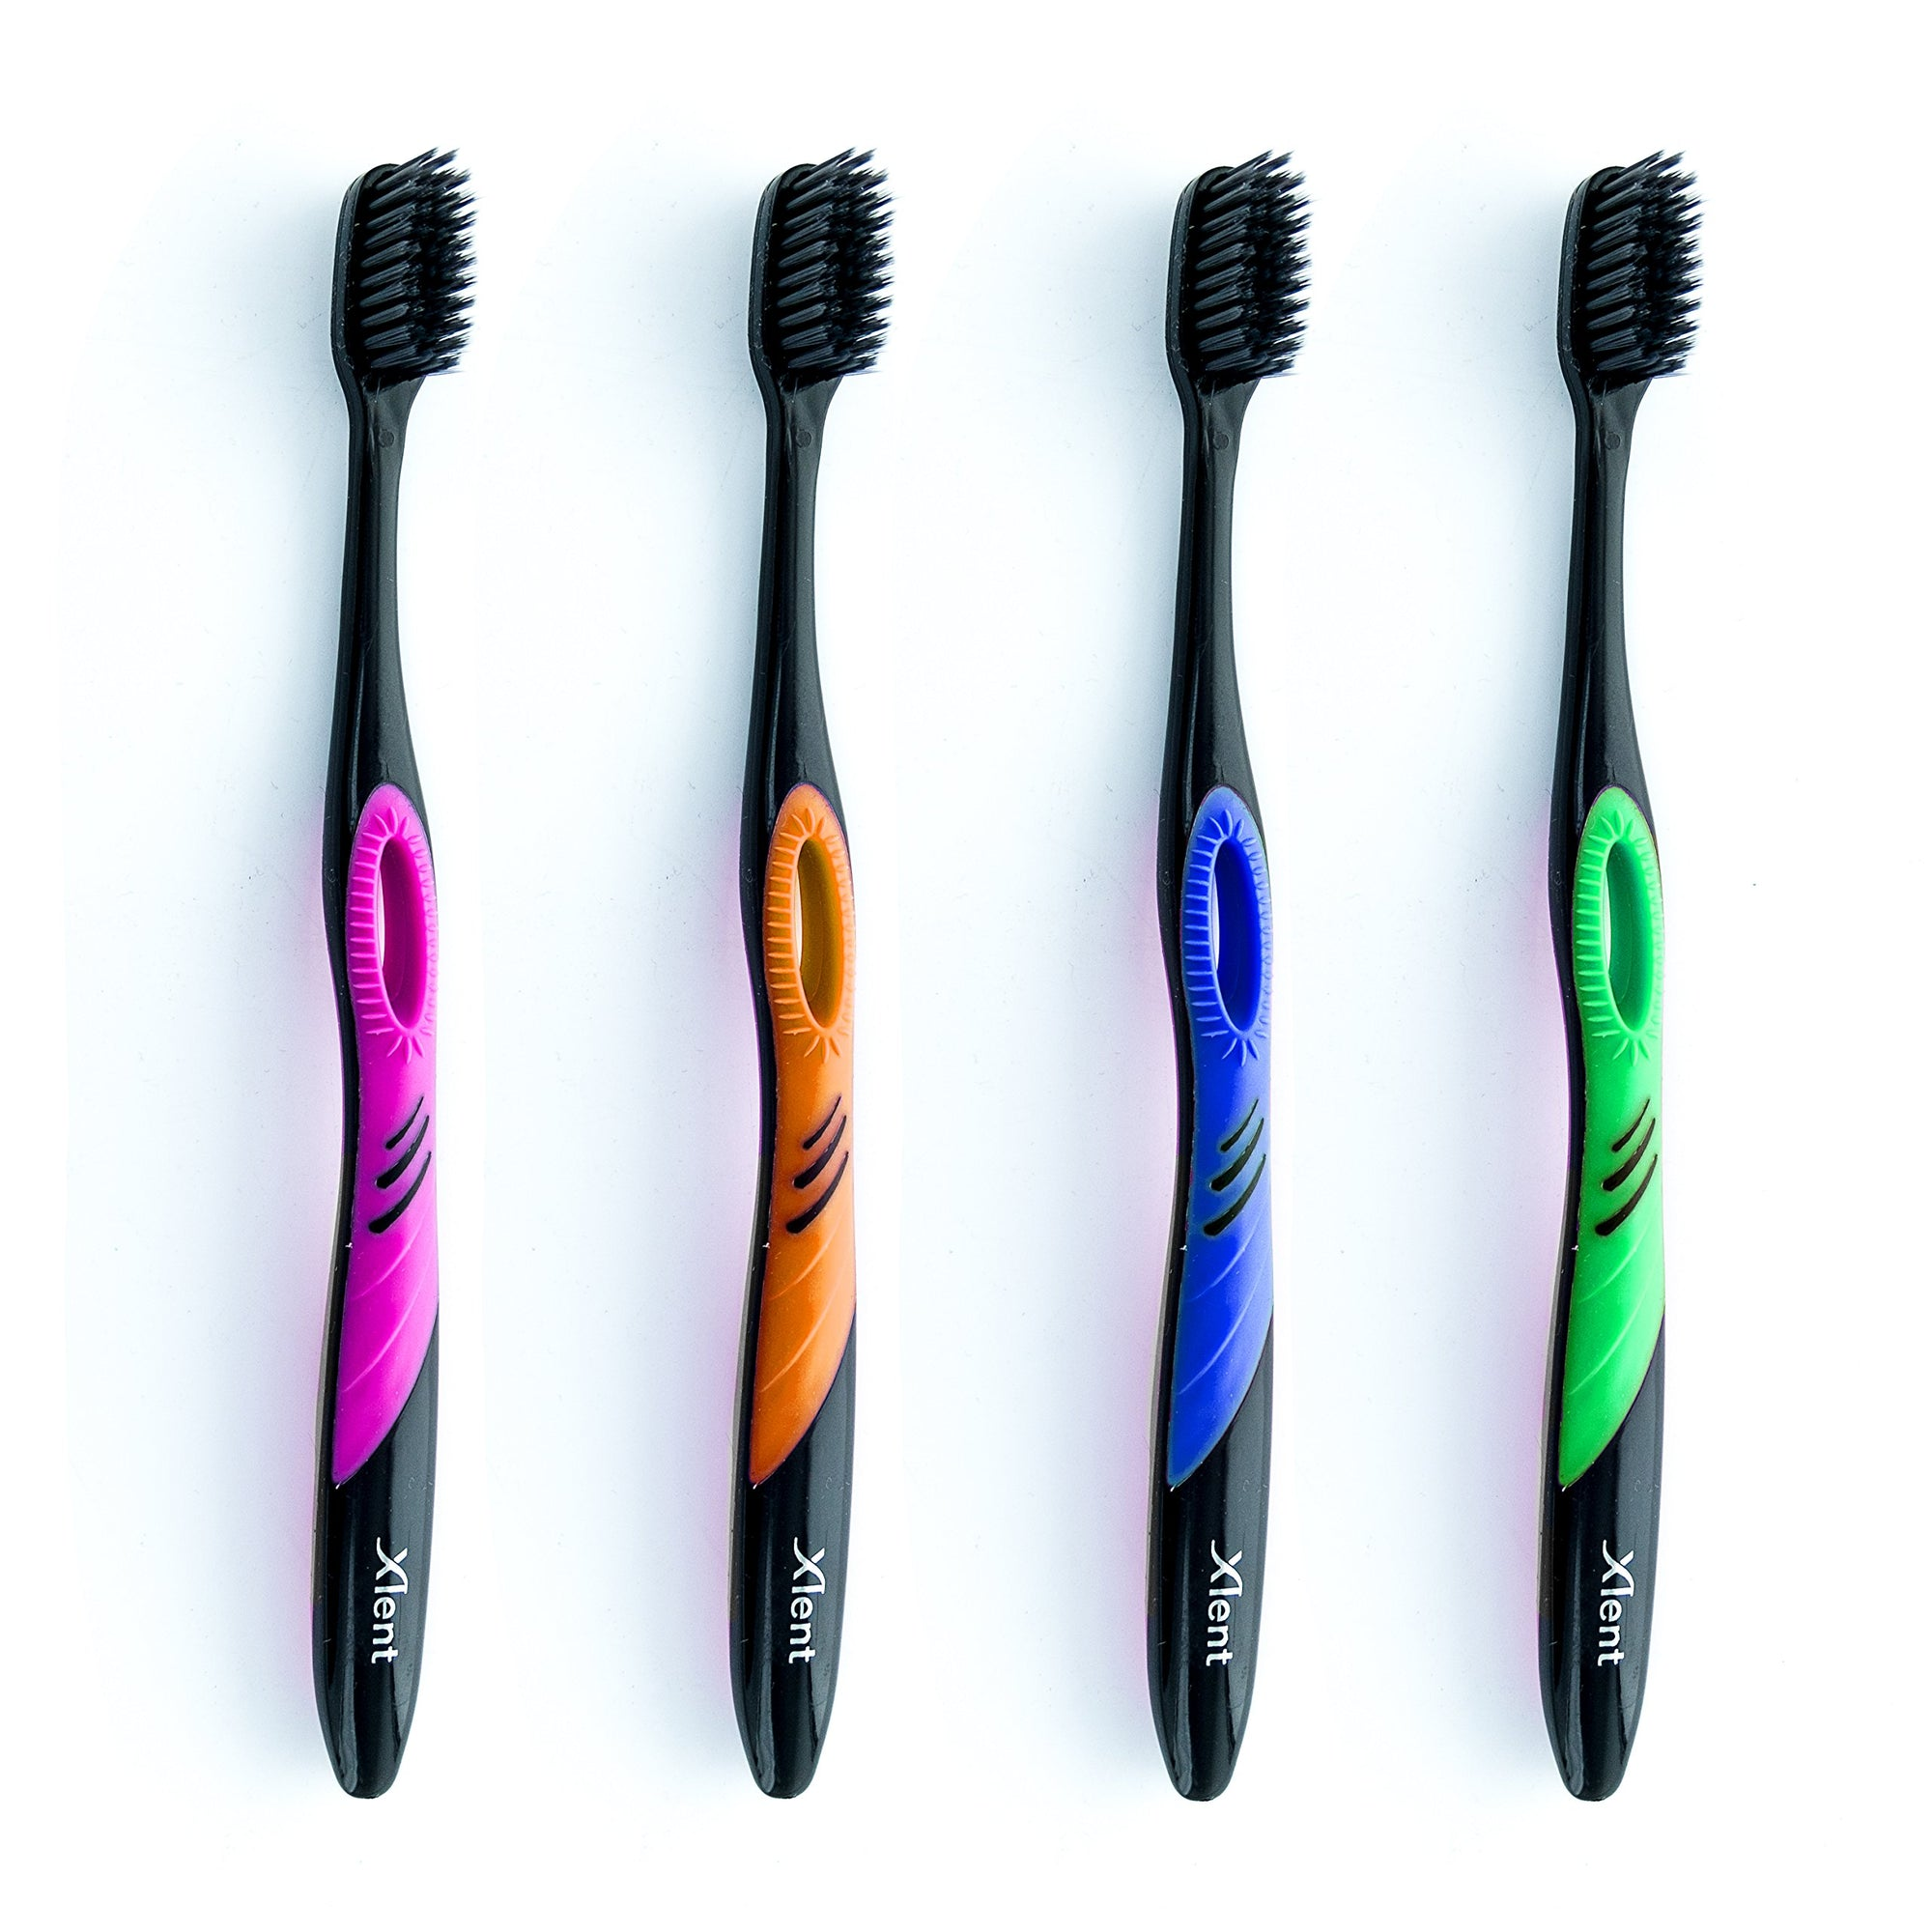 4 pcs Xlent Dental Activated Charcoal Bristle Toothbrush - Xtreme Soft